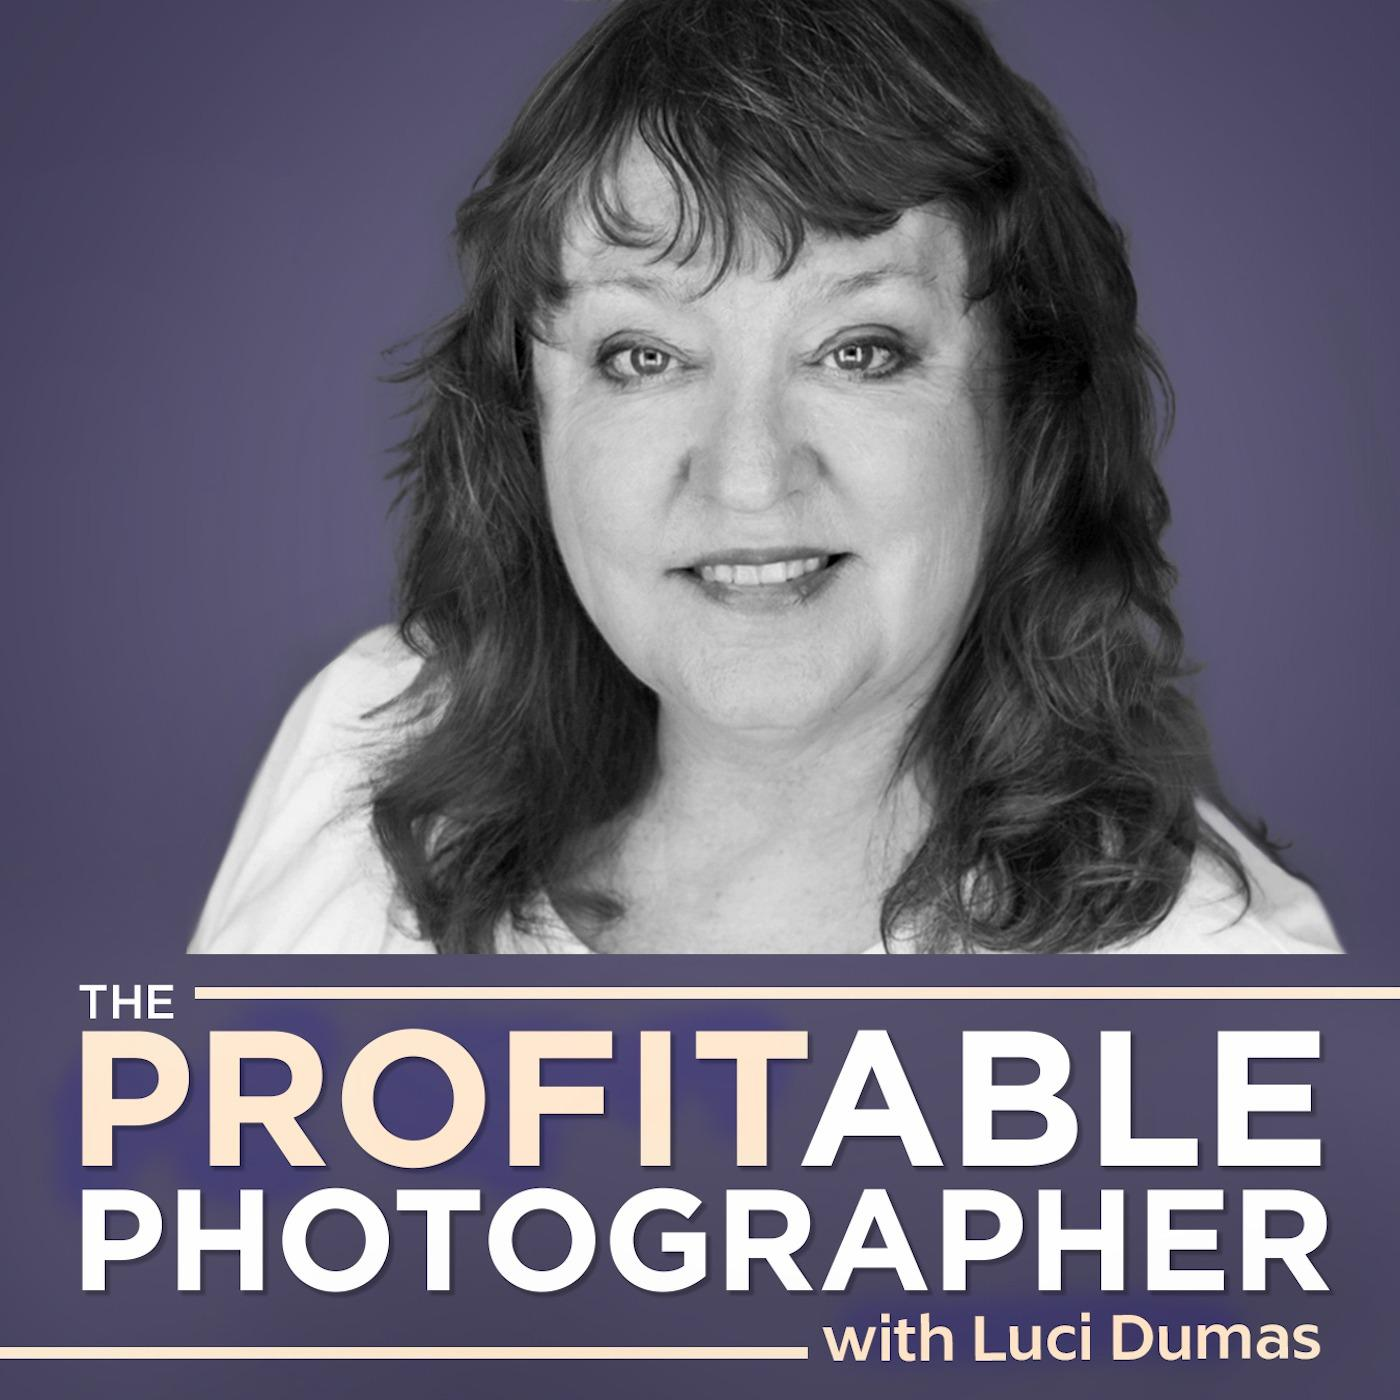 The Profitable Photographer